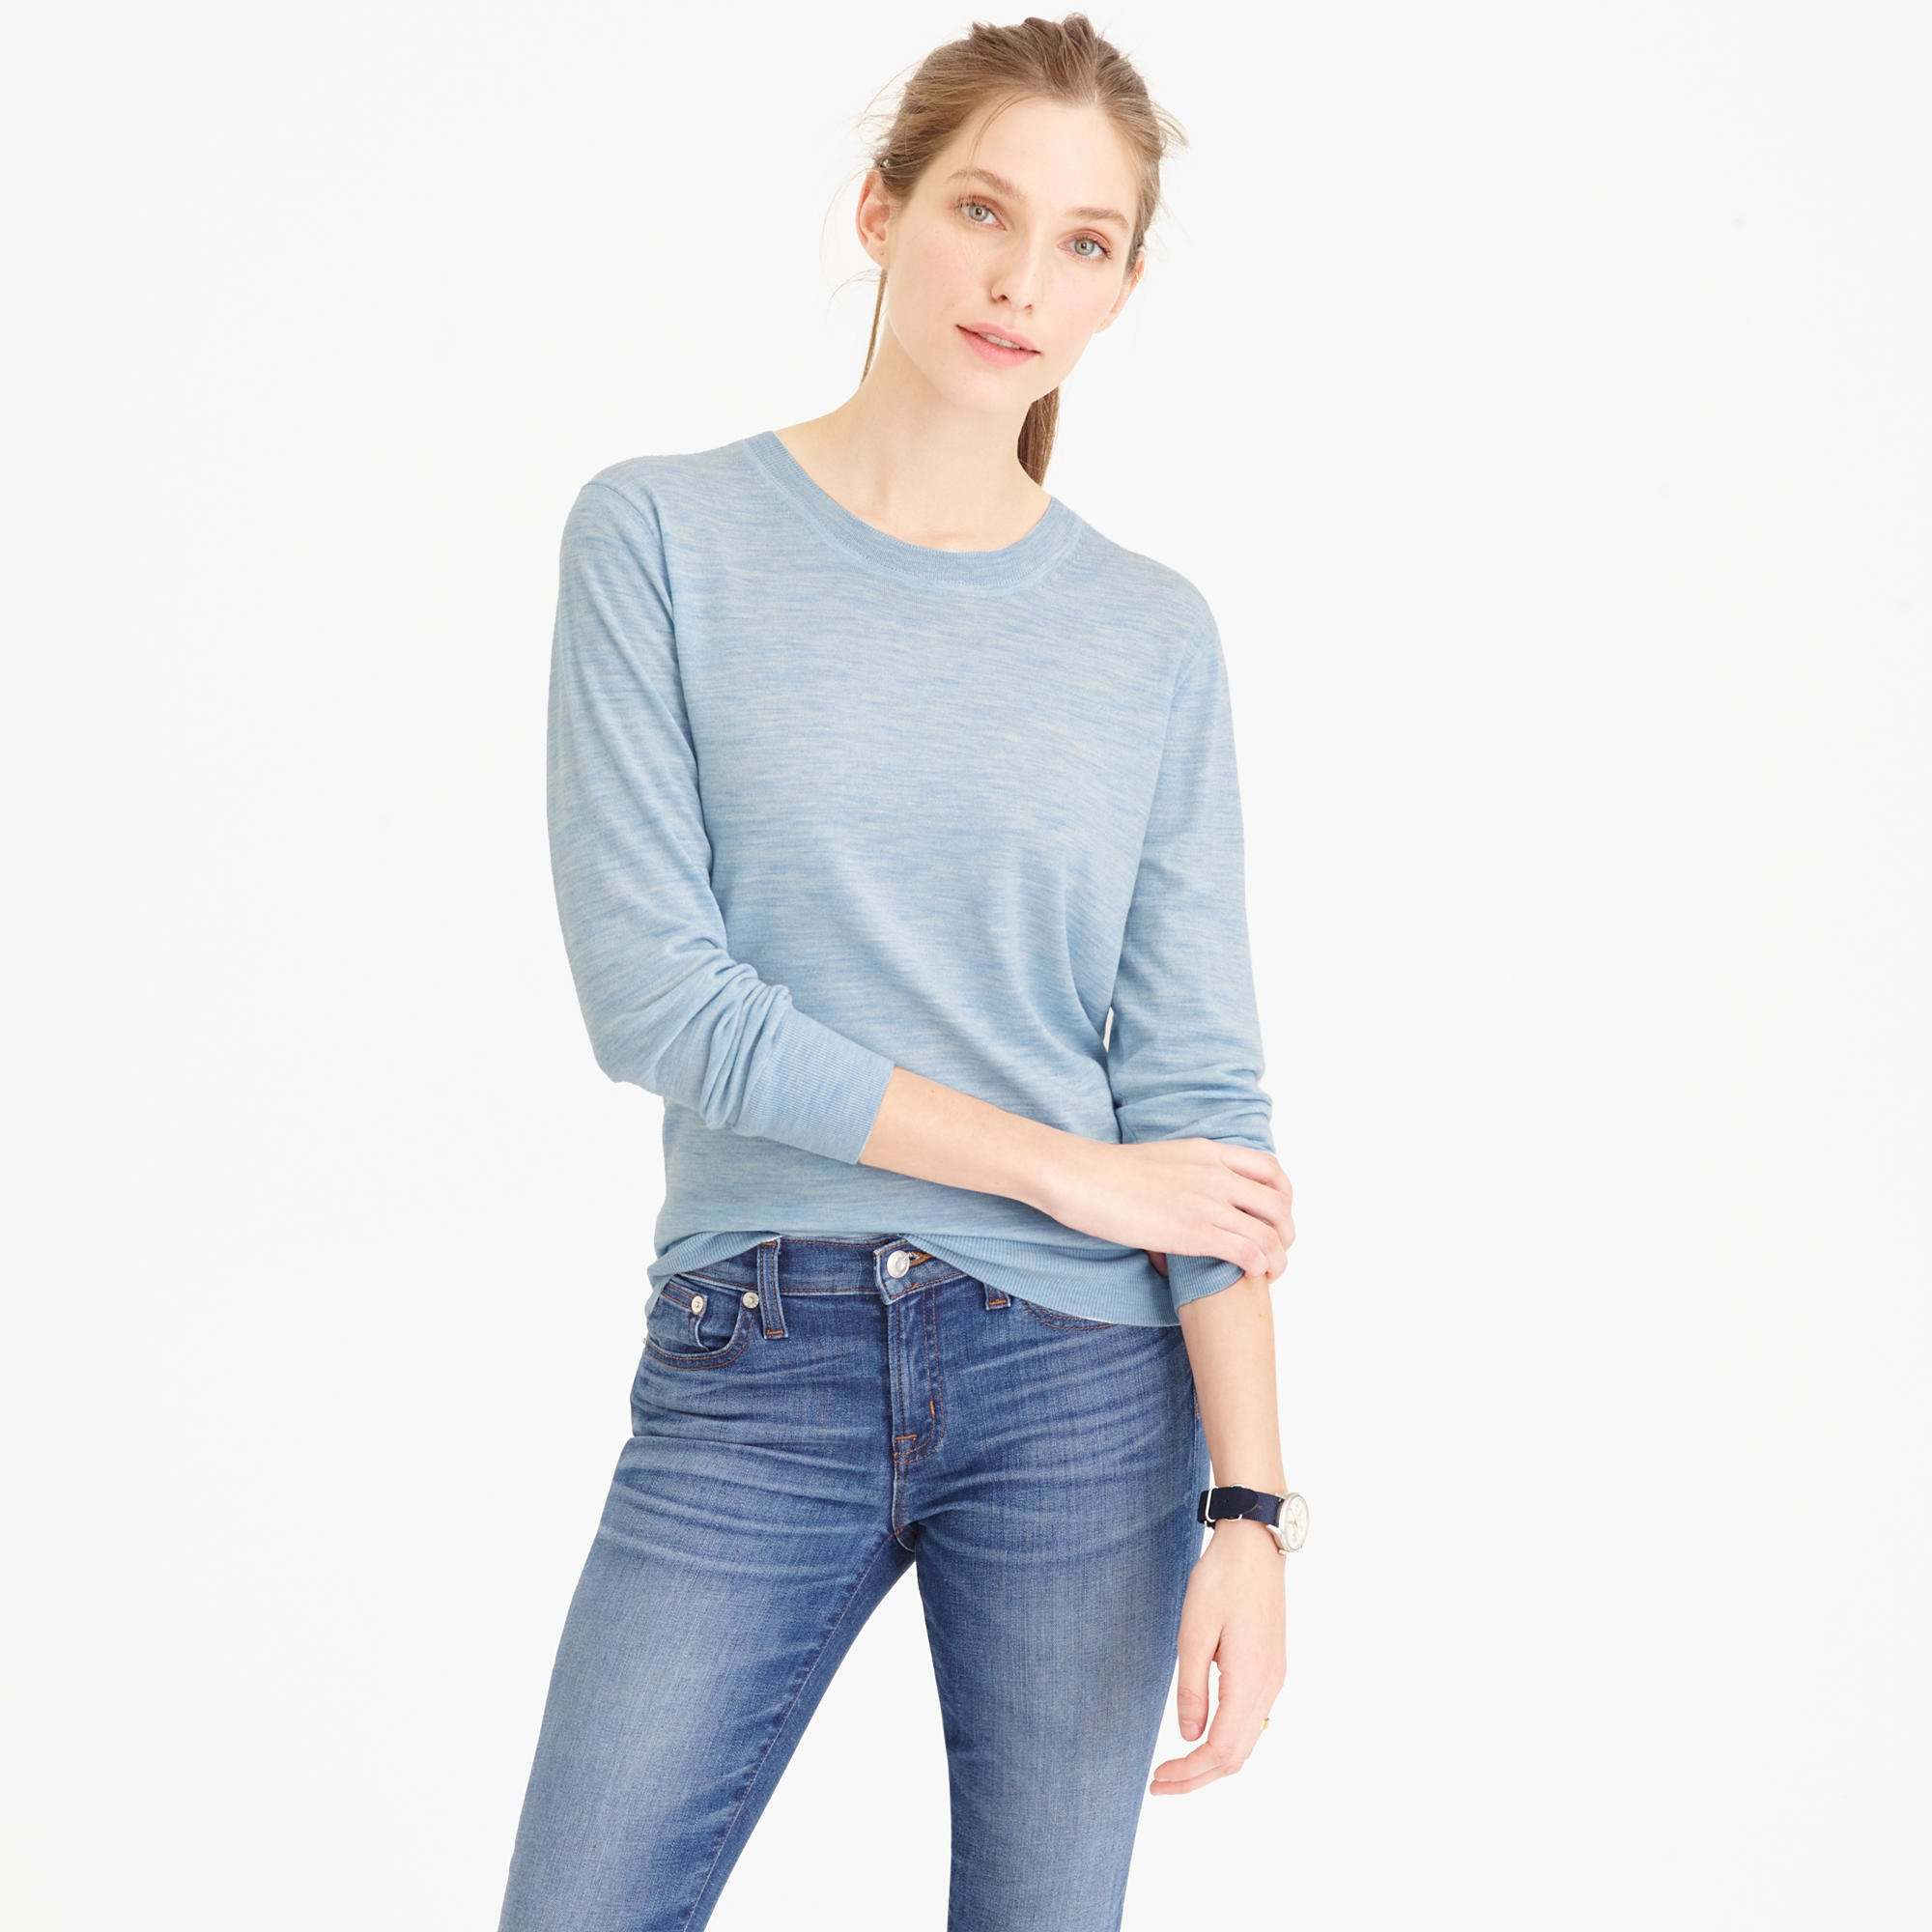 Featherweight merino wool crewneck sweater in blue for Merino wool shirt womens